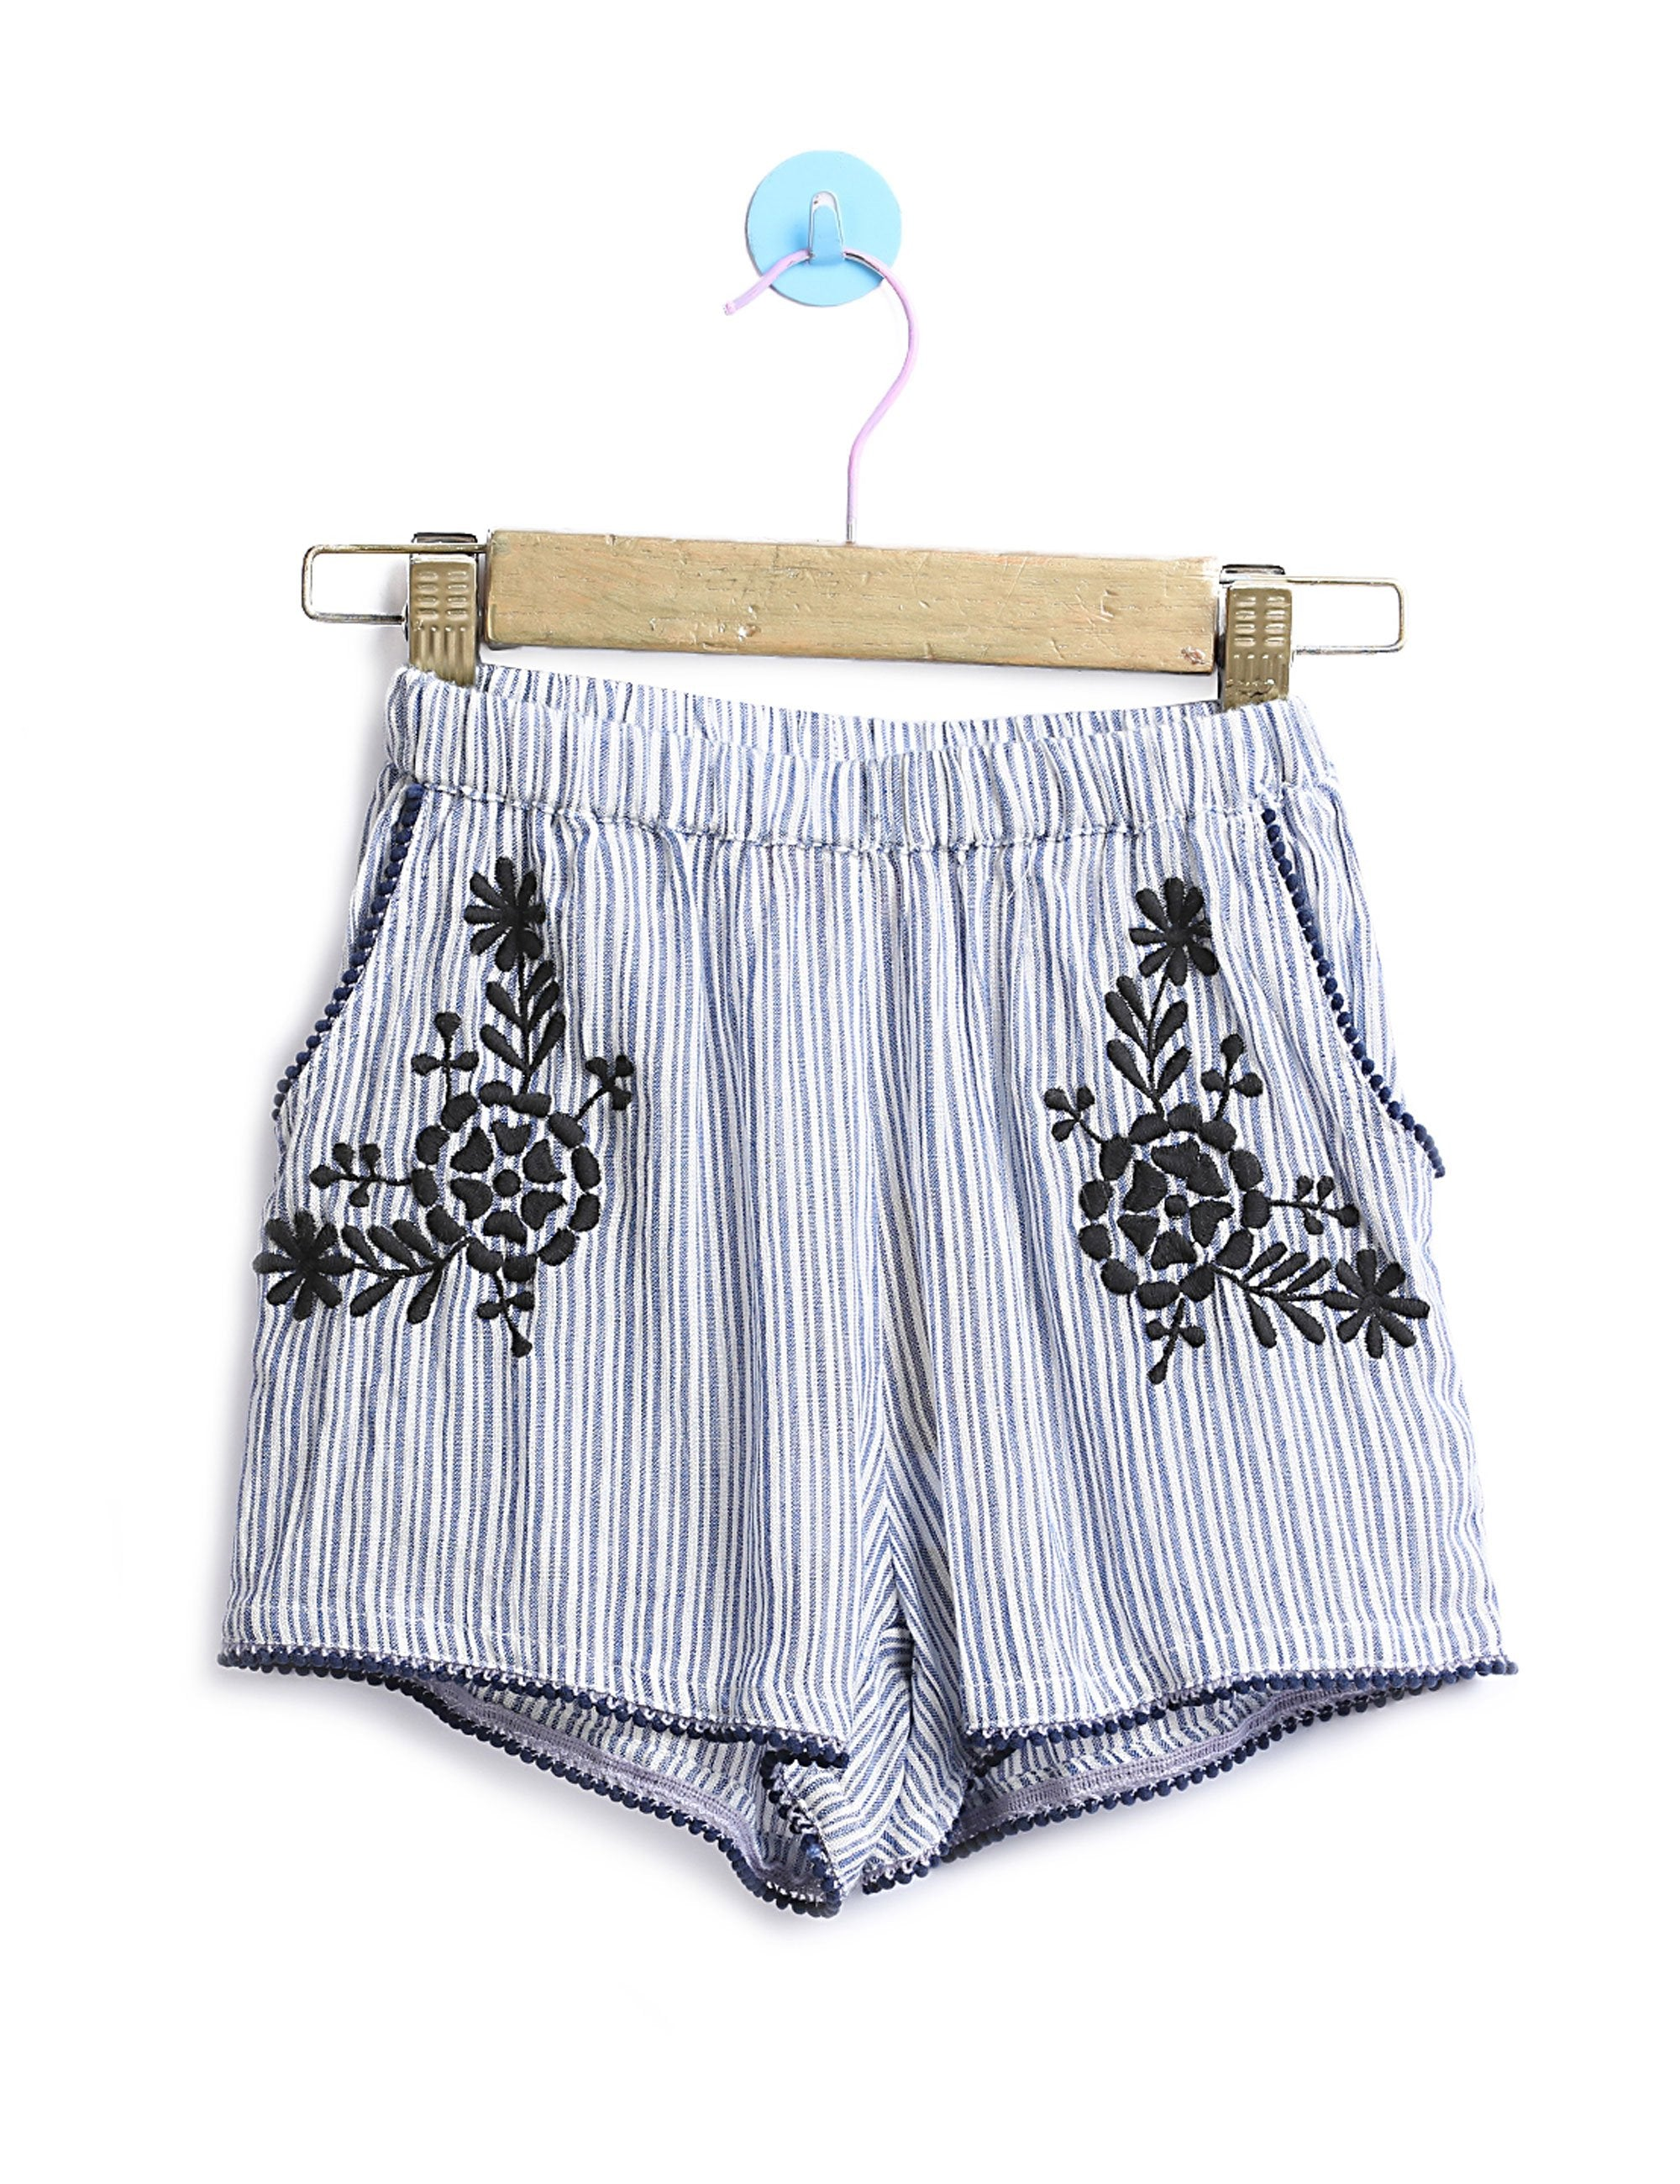 Stripe Shorts with Embroidery for Girls